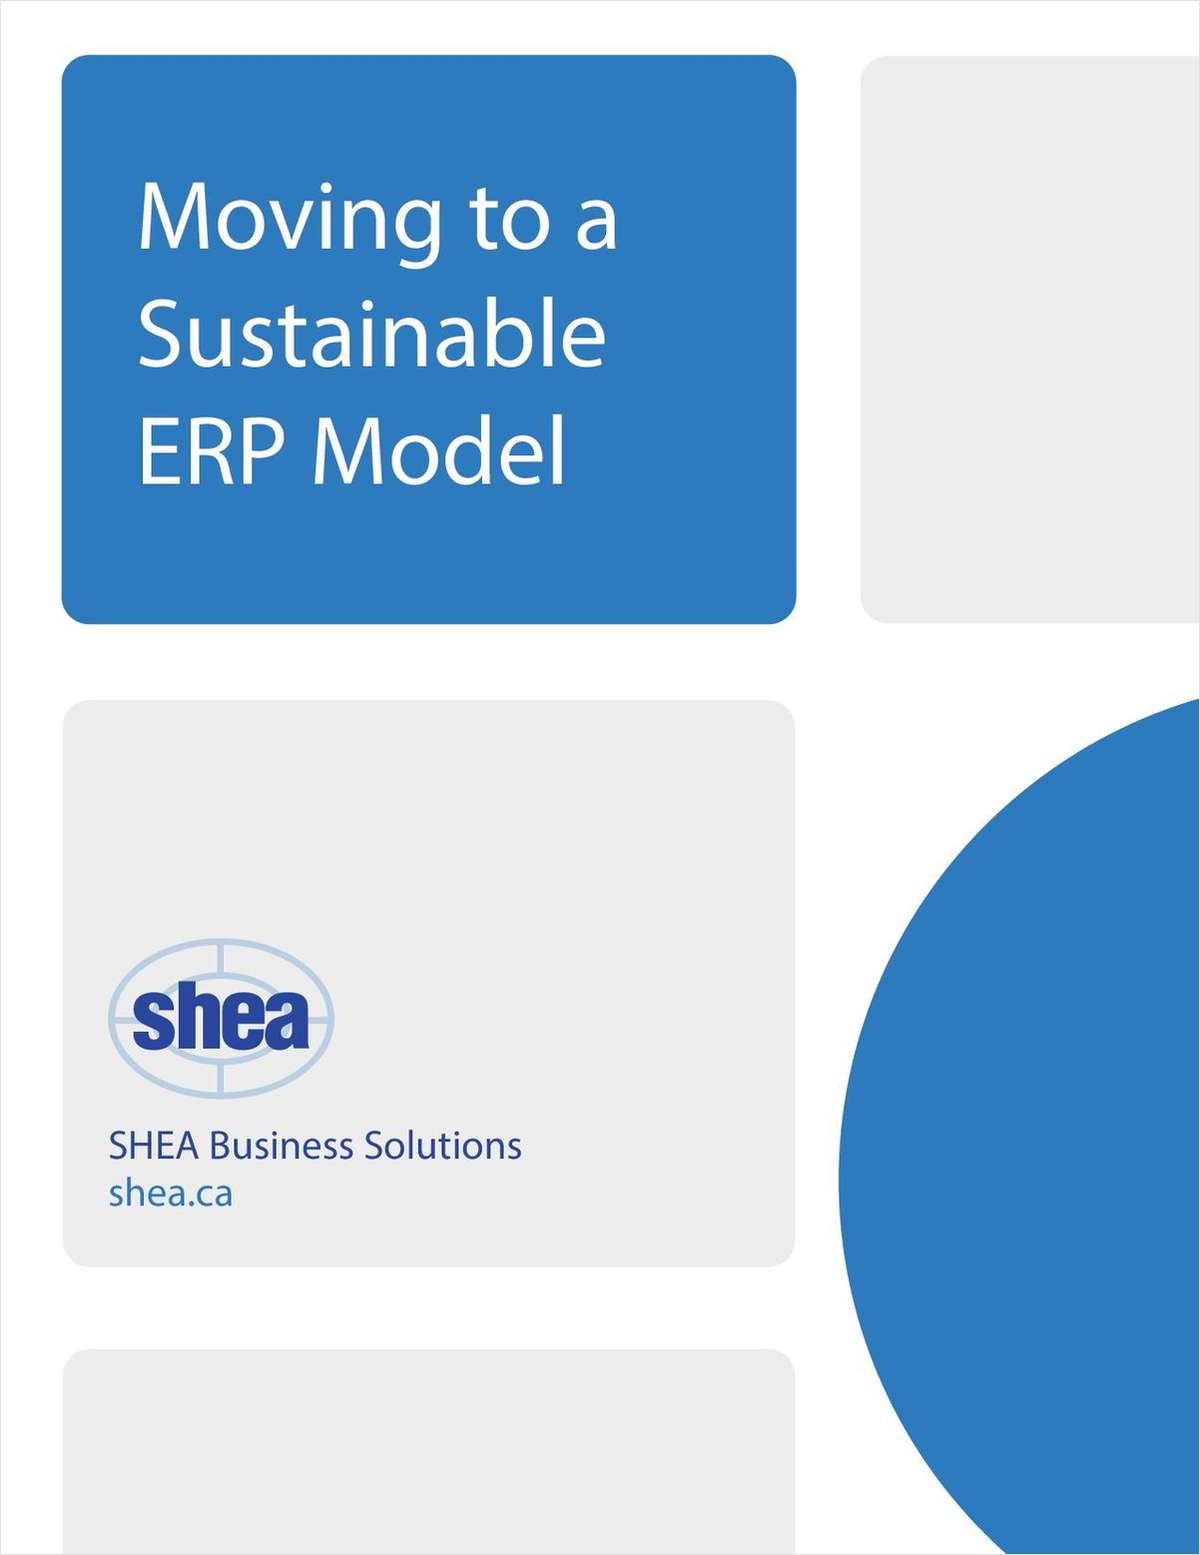 Moving to a Sustainable ERP Model